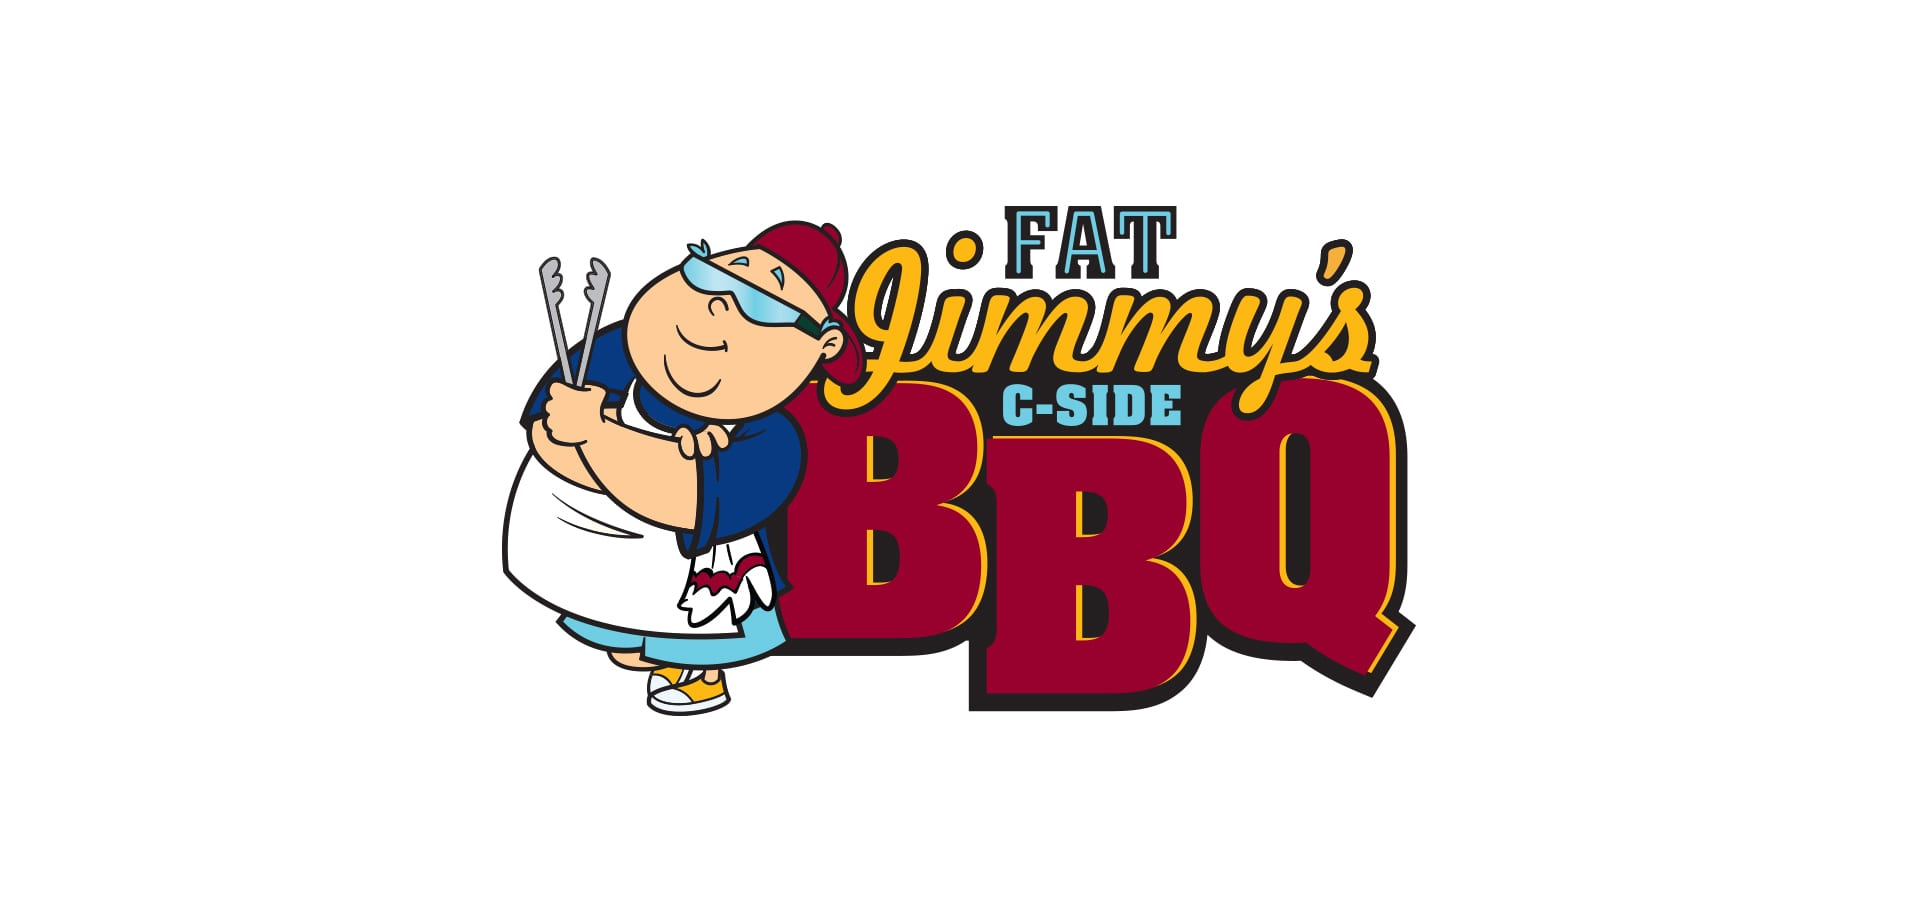 The logo for Fat Jimmy's C-Side BBQ, a restaurant on the Carnival Cruise Line